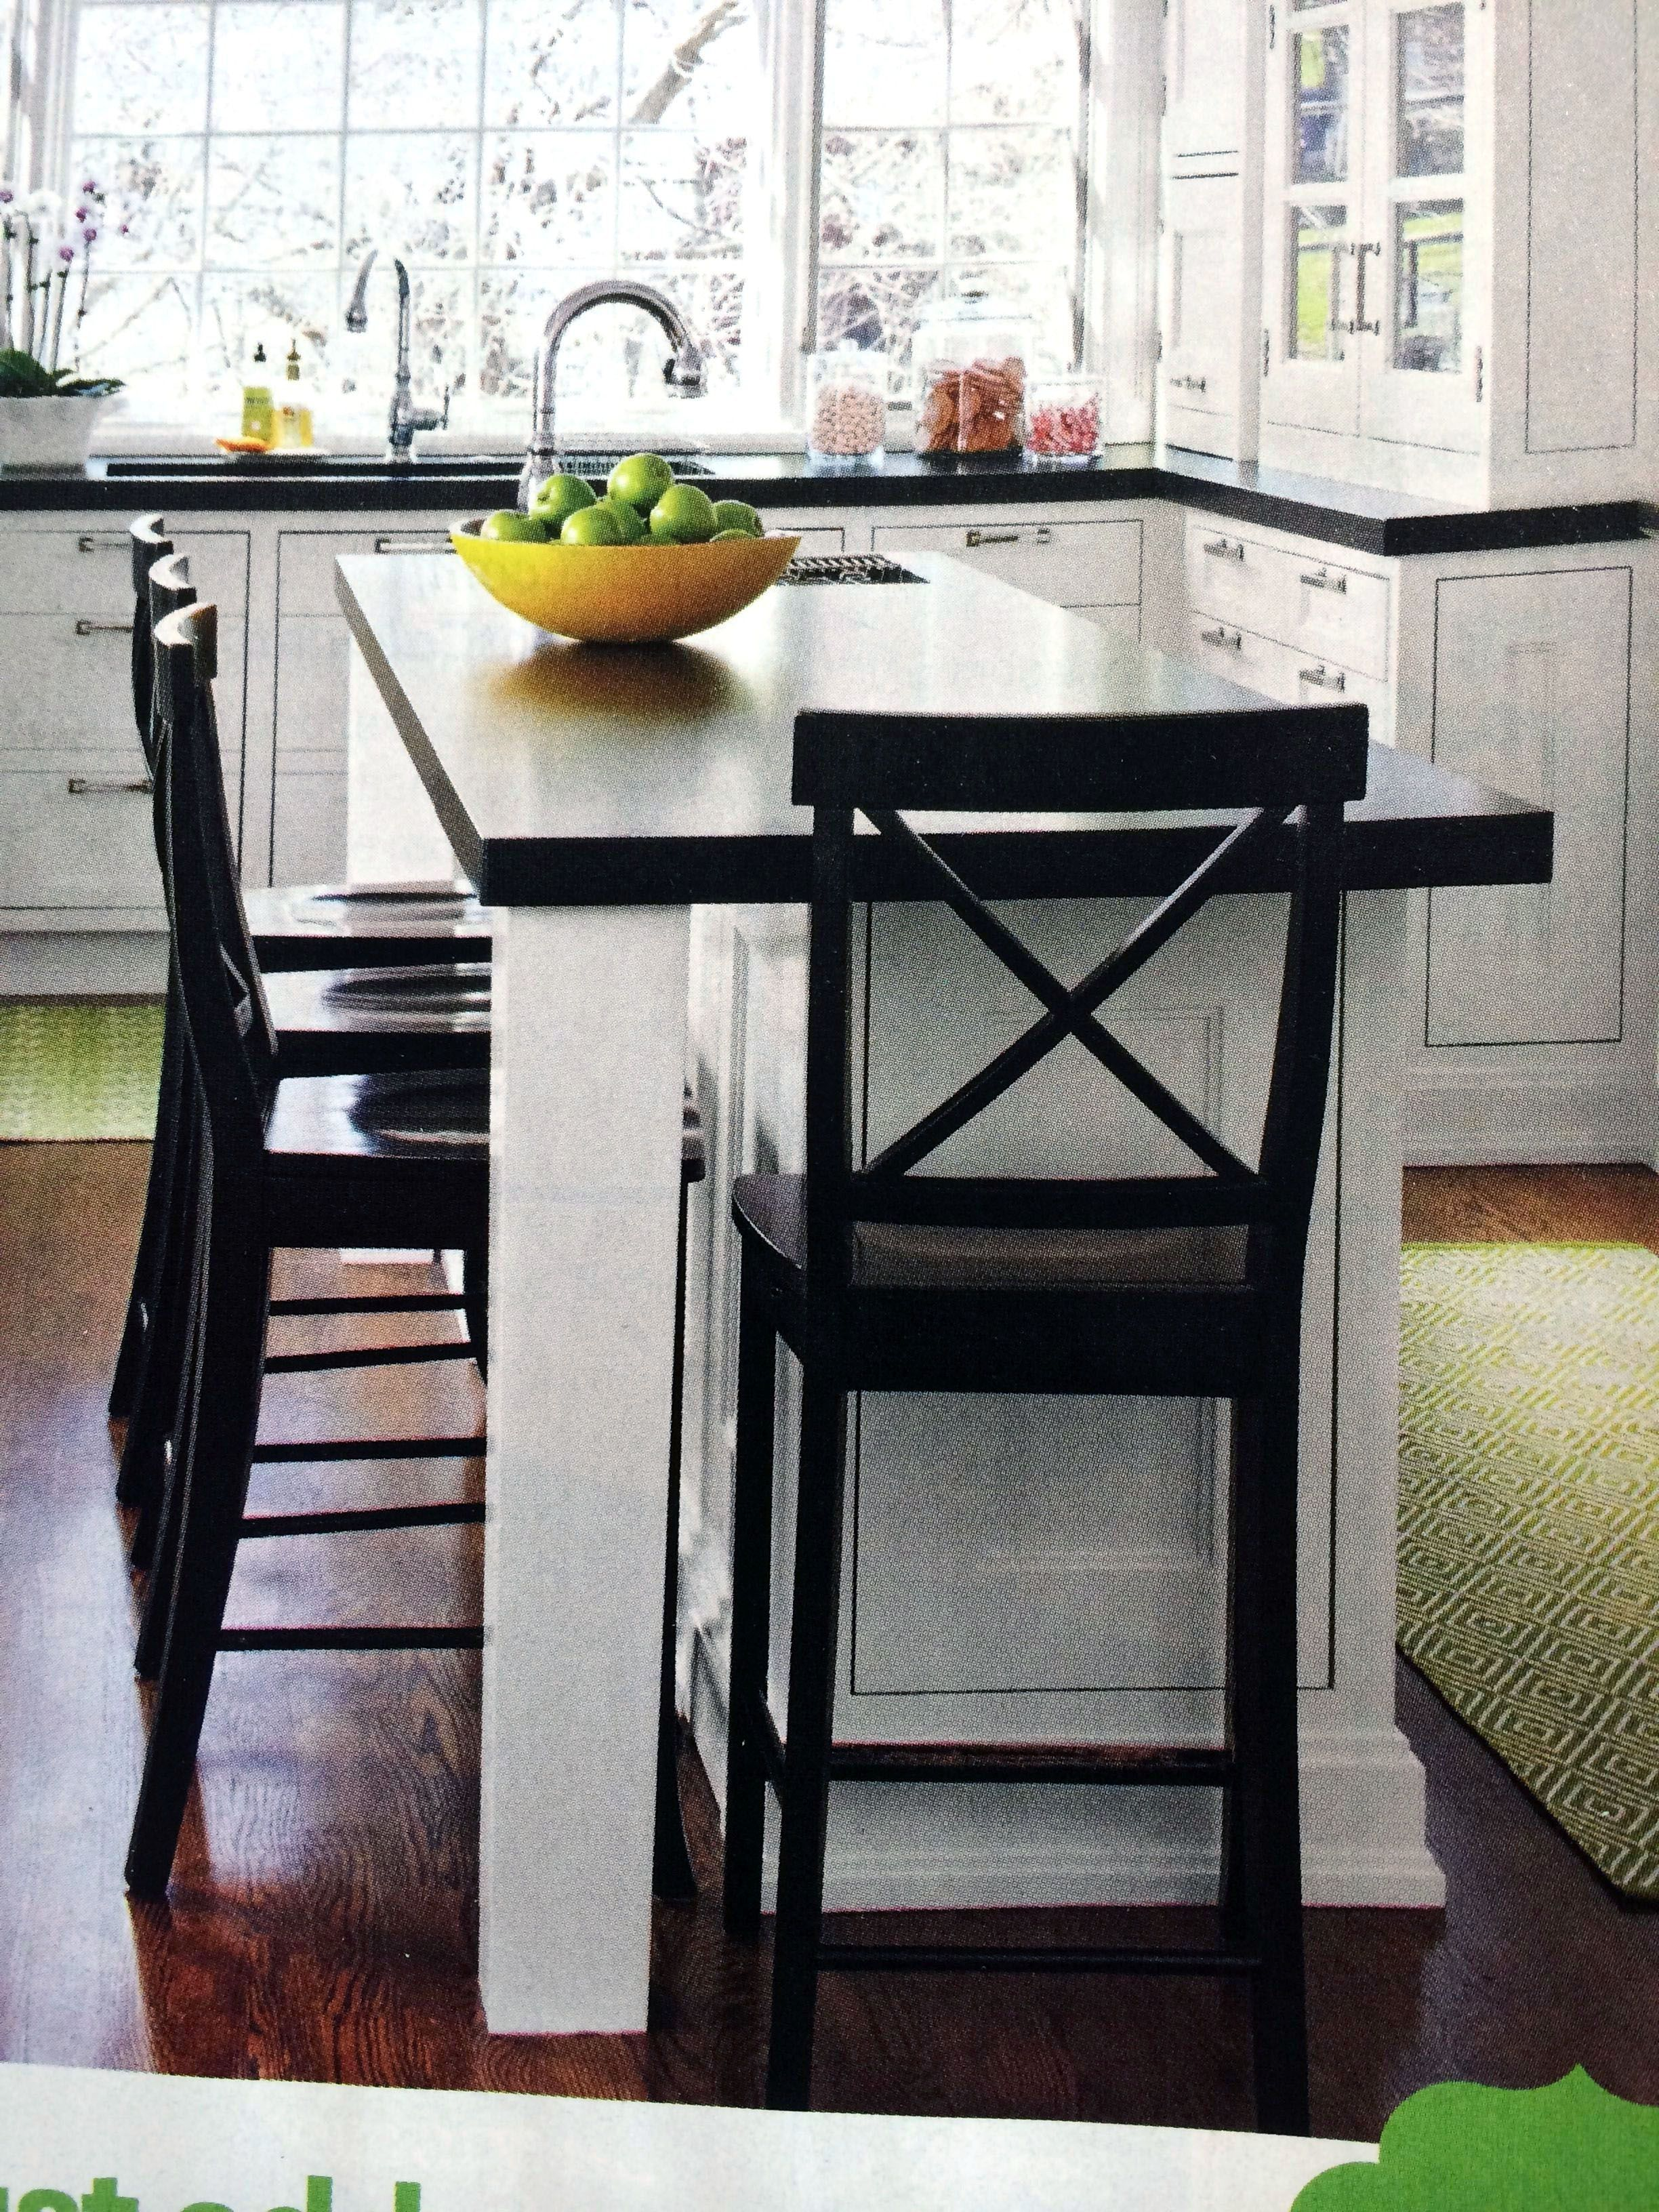 8 Small Kitchen Table Ideas for Your Home | Small space ...